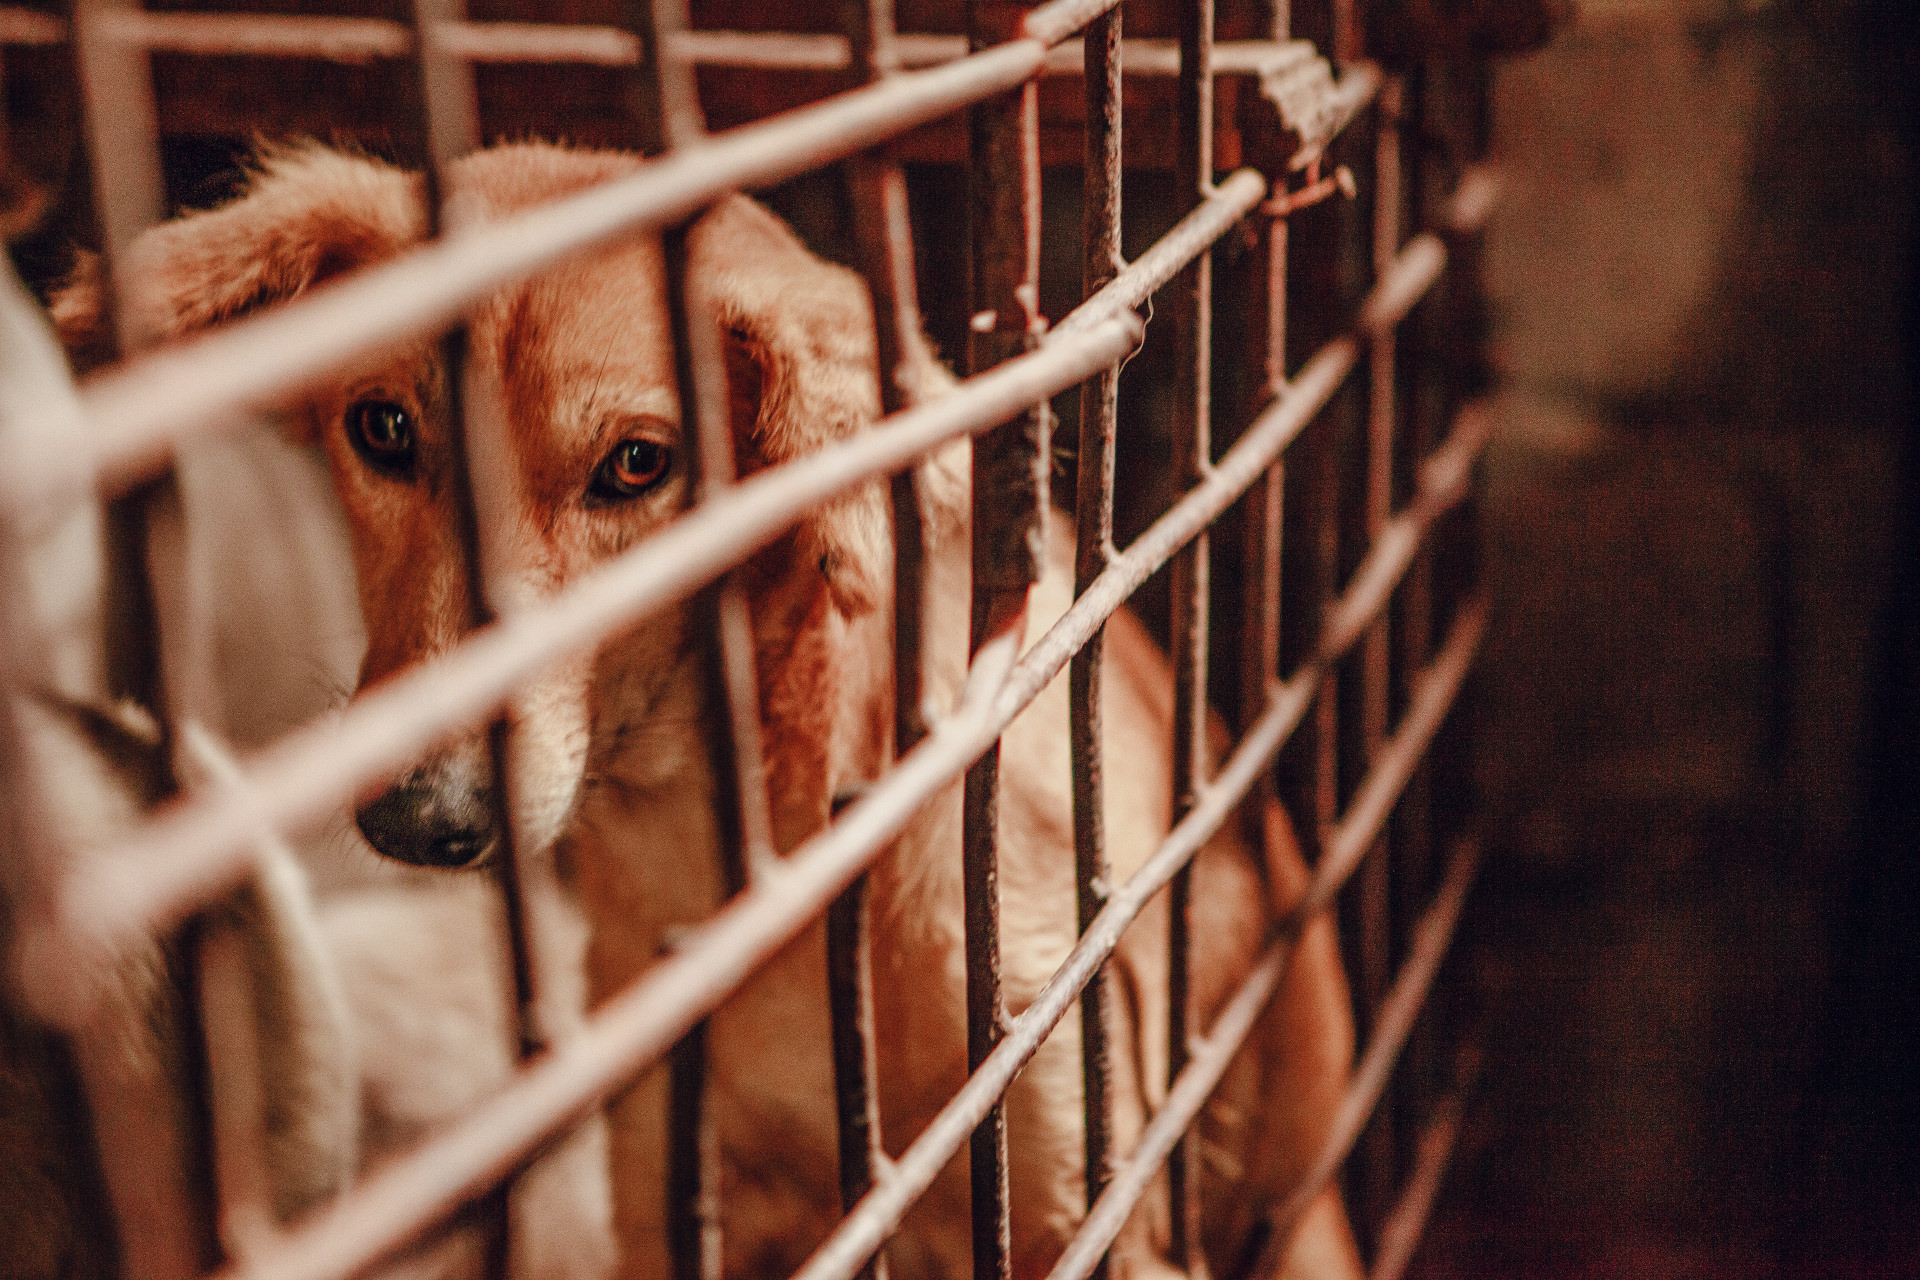 Sad dog in a cage